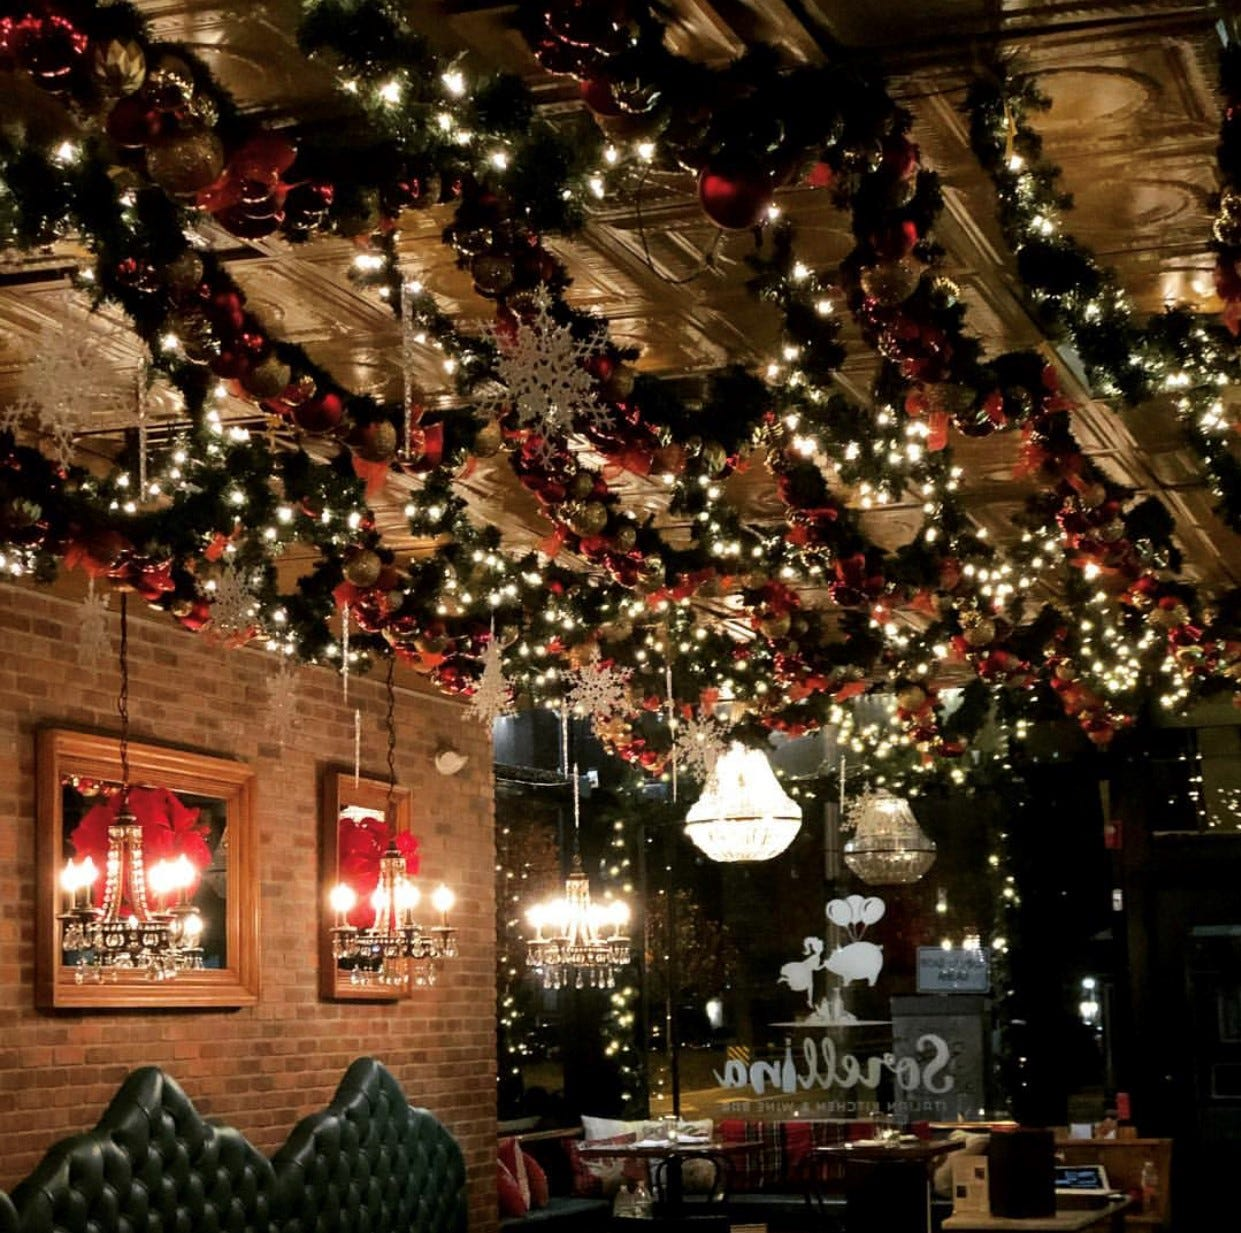 Tasteful to tacky: NJ's most festive restaurants to visit during the holidays